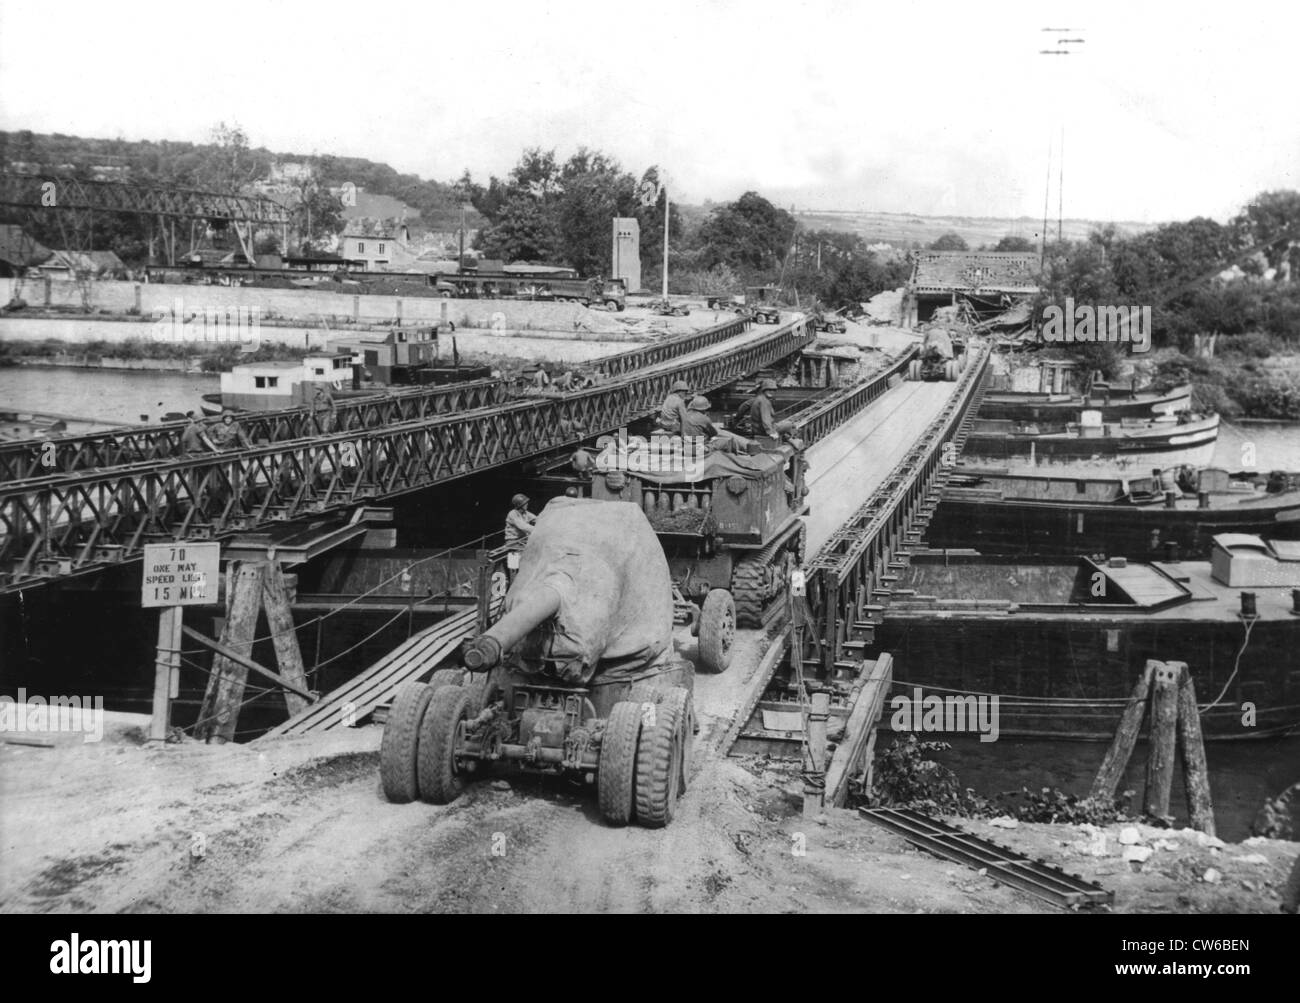 US 155 mm. gun across a Bailey Bridge over the Seine river in France (Summer 1944) - Stock Image